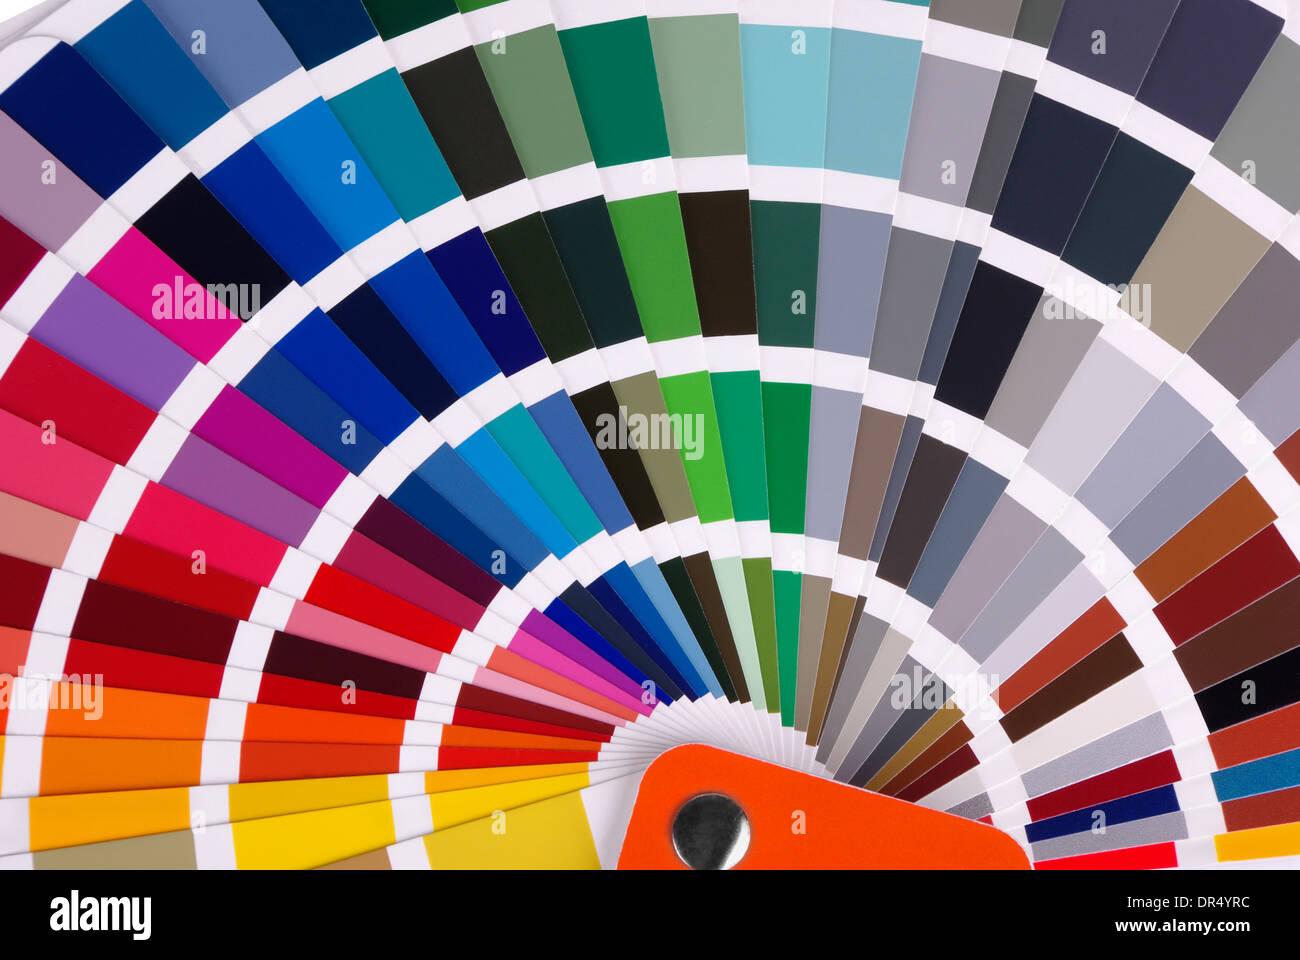 Color chart close-up Stock Photo